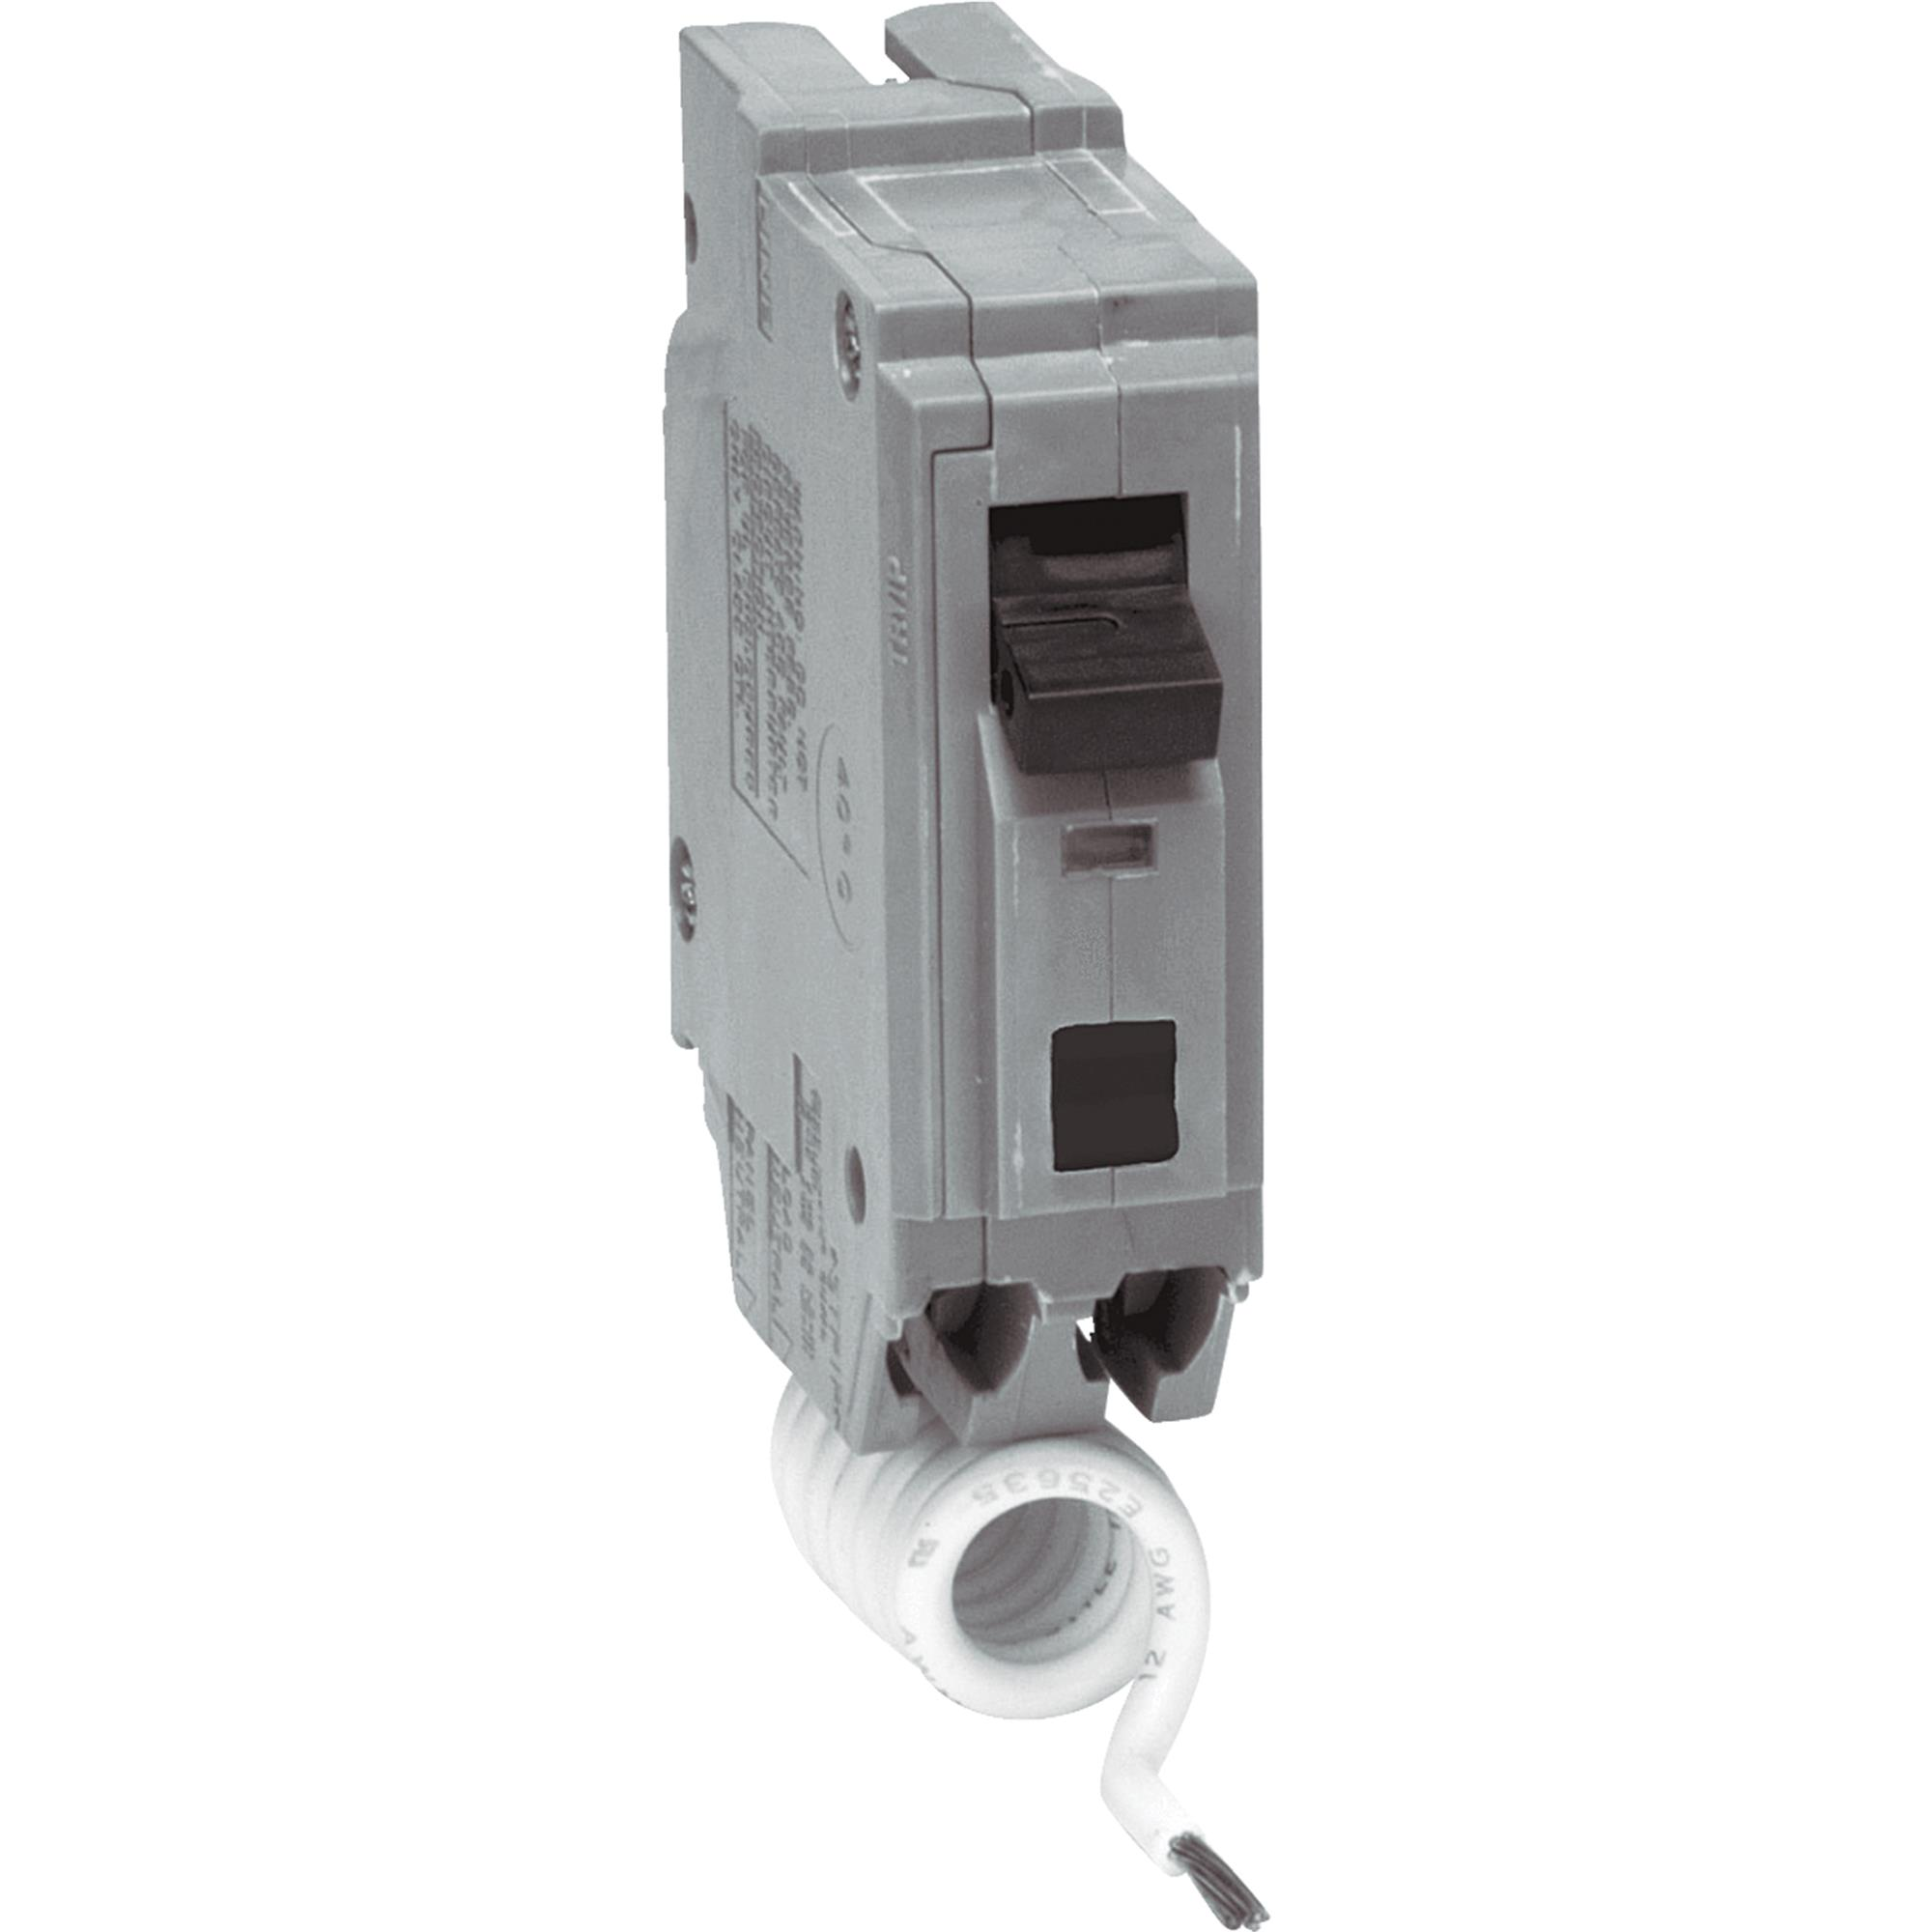 Ge Q Line 20 Amp 1 In Double Pole Circuit Breaker Modern Design Of Qline 21 4 Gfci 40 2 Single From 3 97 Nextag